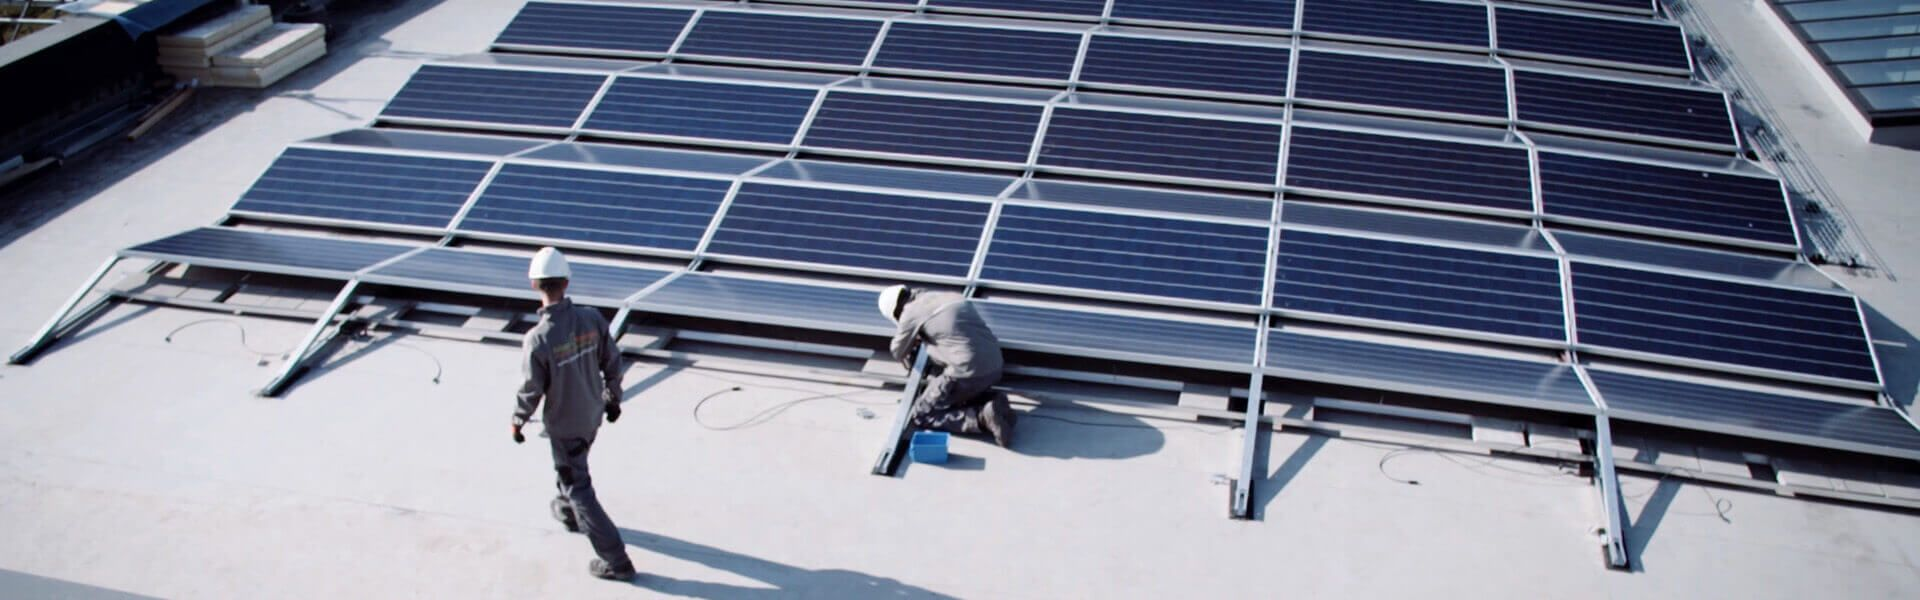 Solar Panels for Developers and EPC Firms